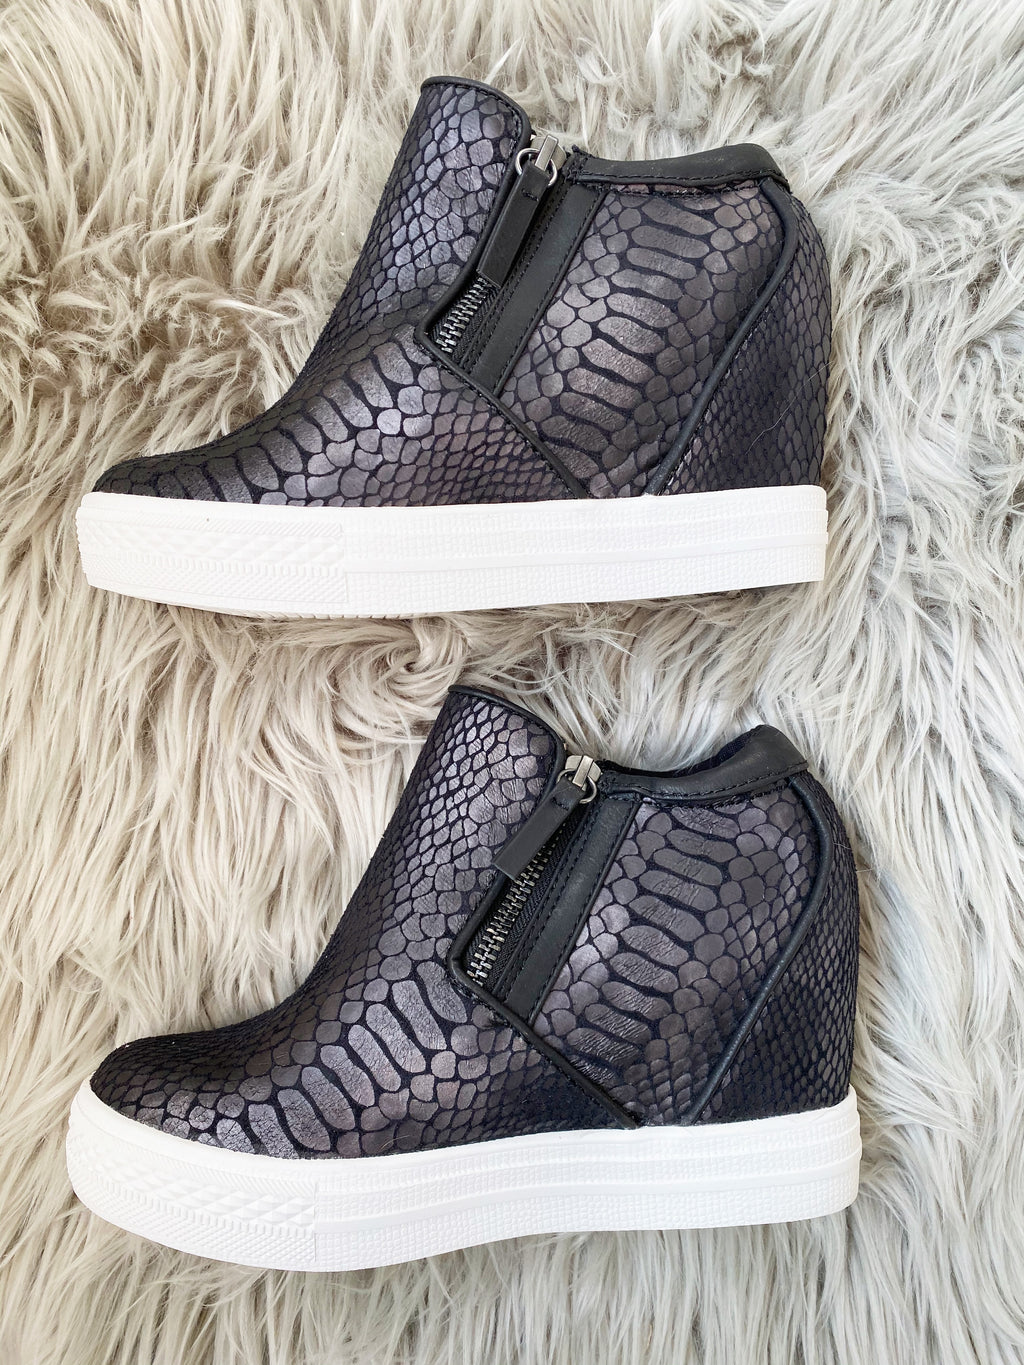 Not Rated Wedge Sneakers in Black